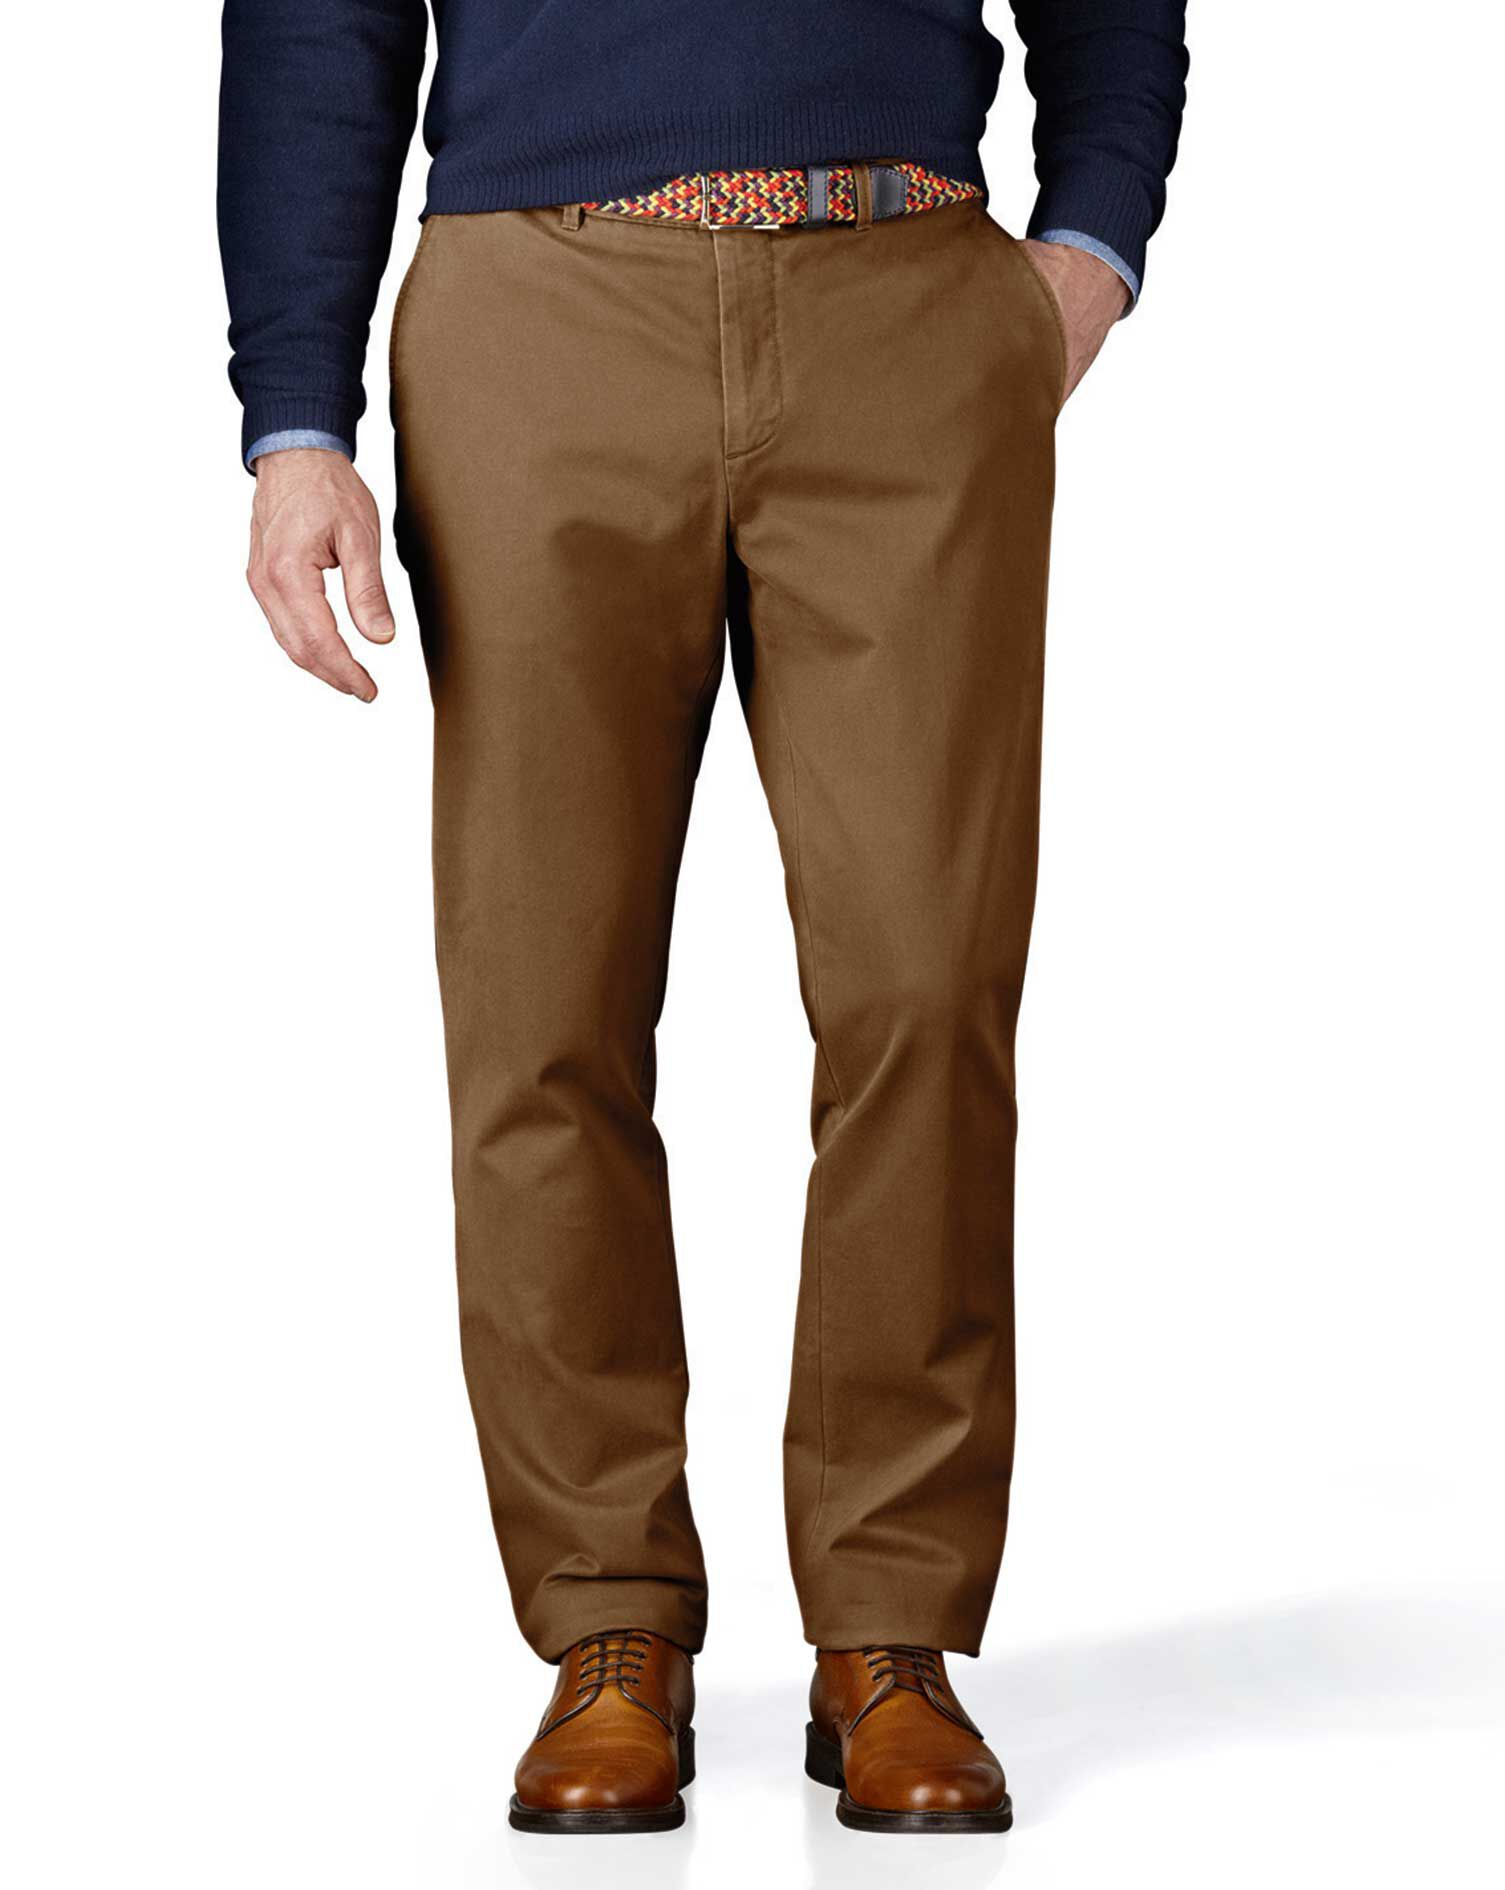 Camel Extra Slim Fit Flat Front Cotton Chino Trousers Size W36 L34 by Charles Tyrwhitt